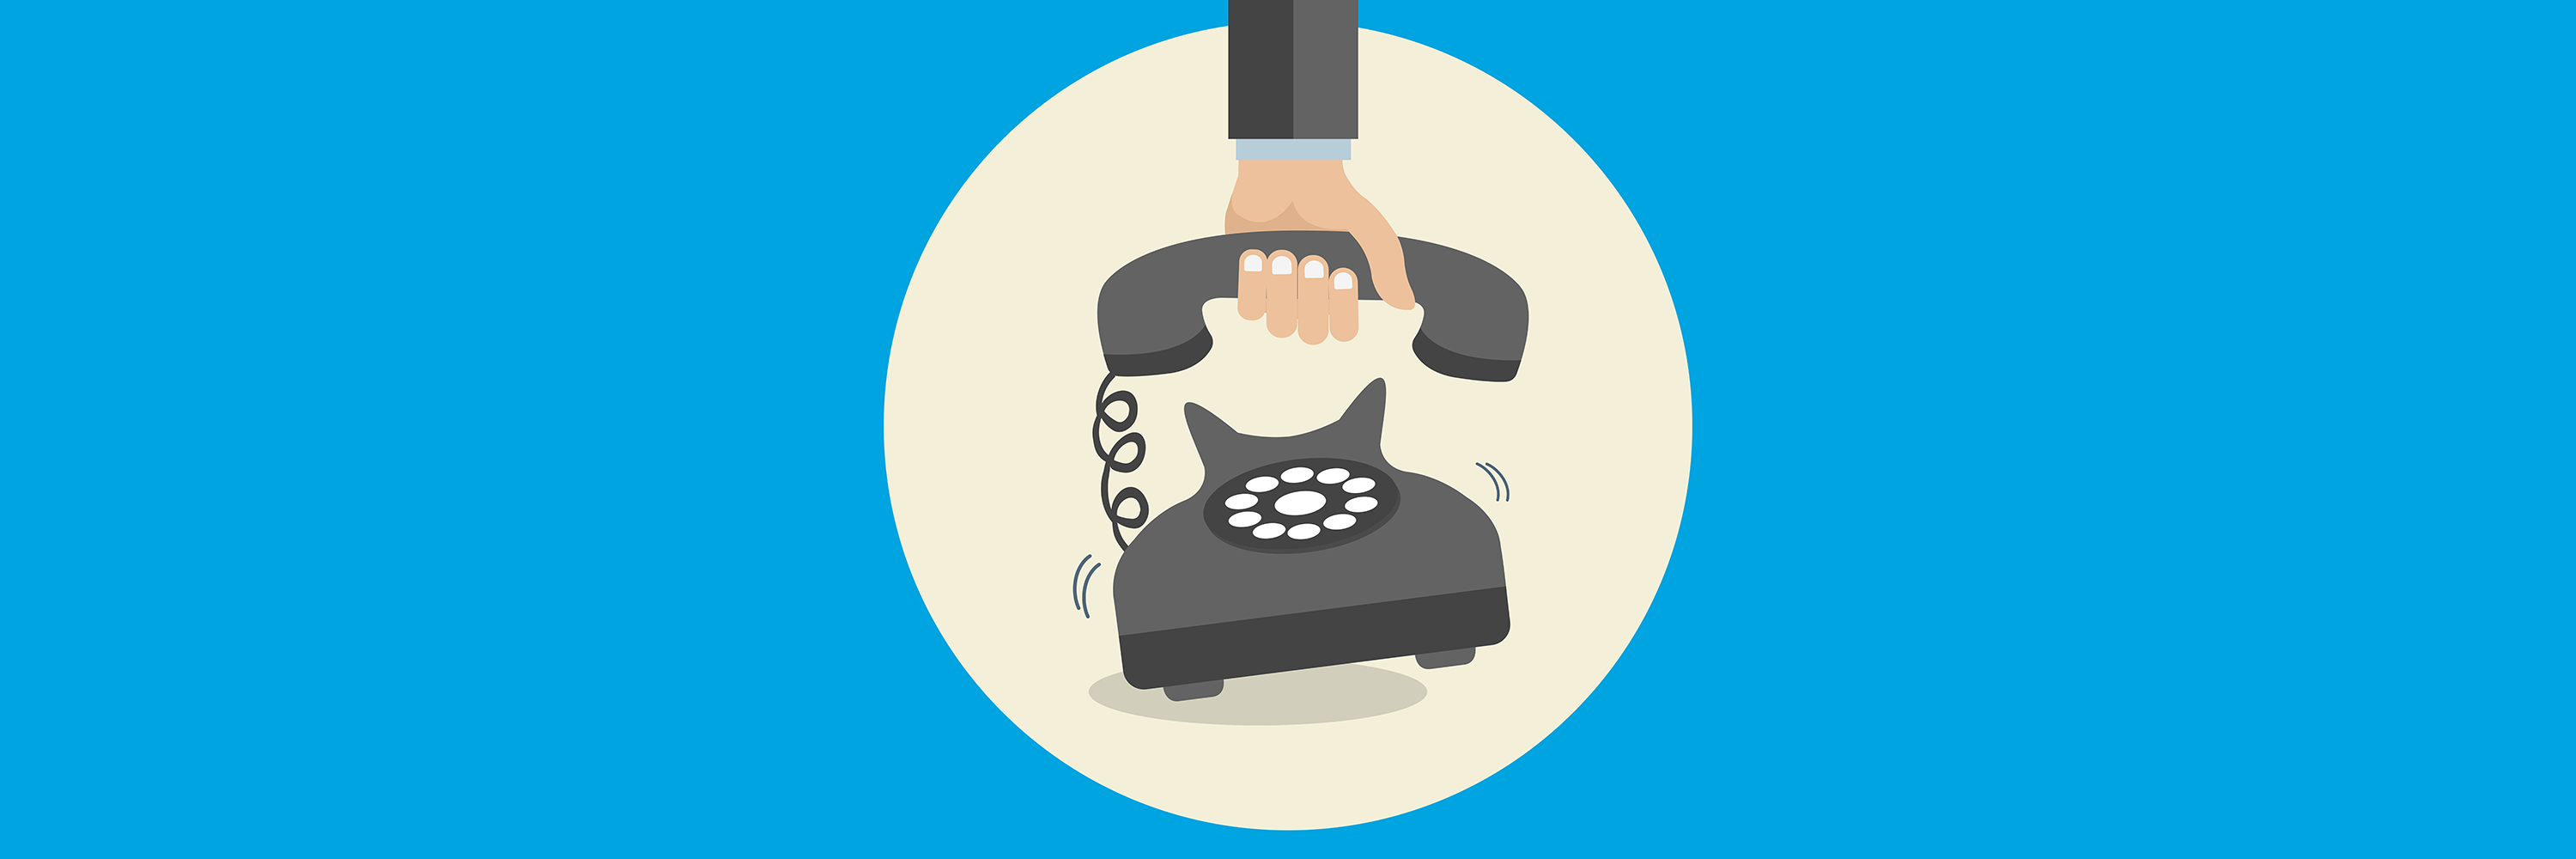 Parkinson's disease - tips for using the telephone